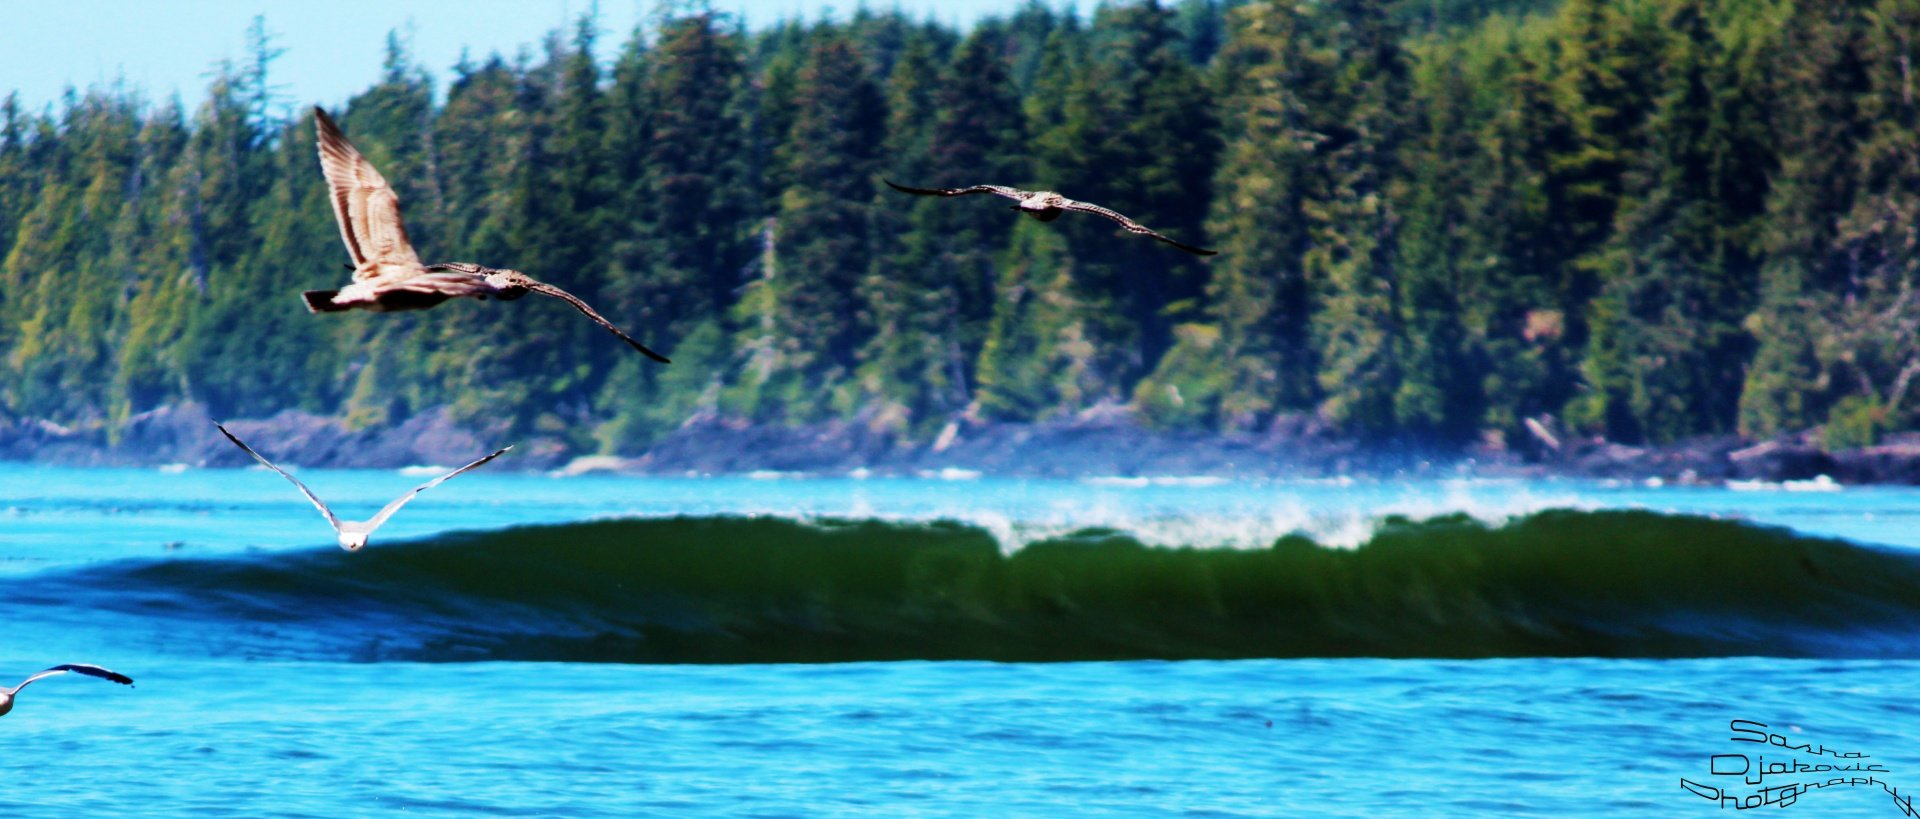 Sasha Djakovic's photo of Vancouver Island South (Jordan River)